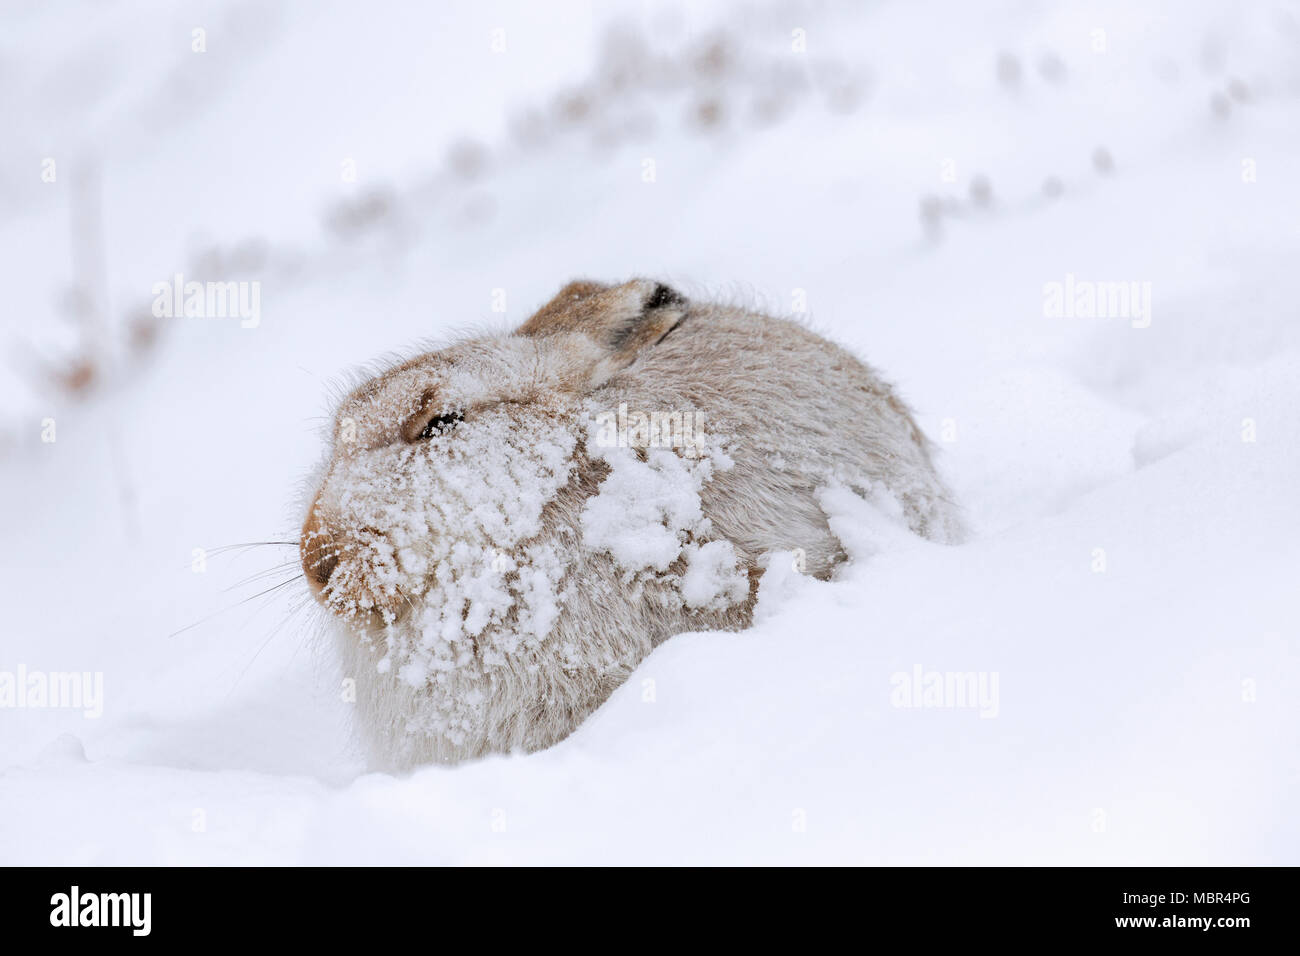 Mountain hare / Alpine hare / snow hare (Lepus timidus) in white winter pelage resting on hillside during snowstorm - Stock Image